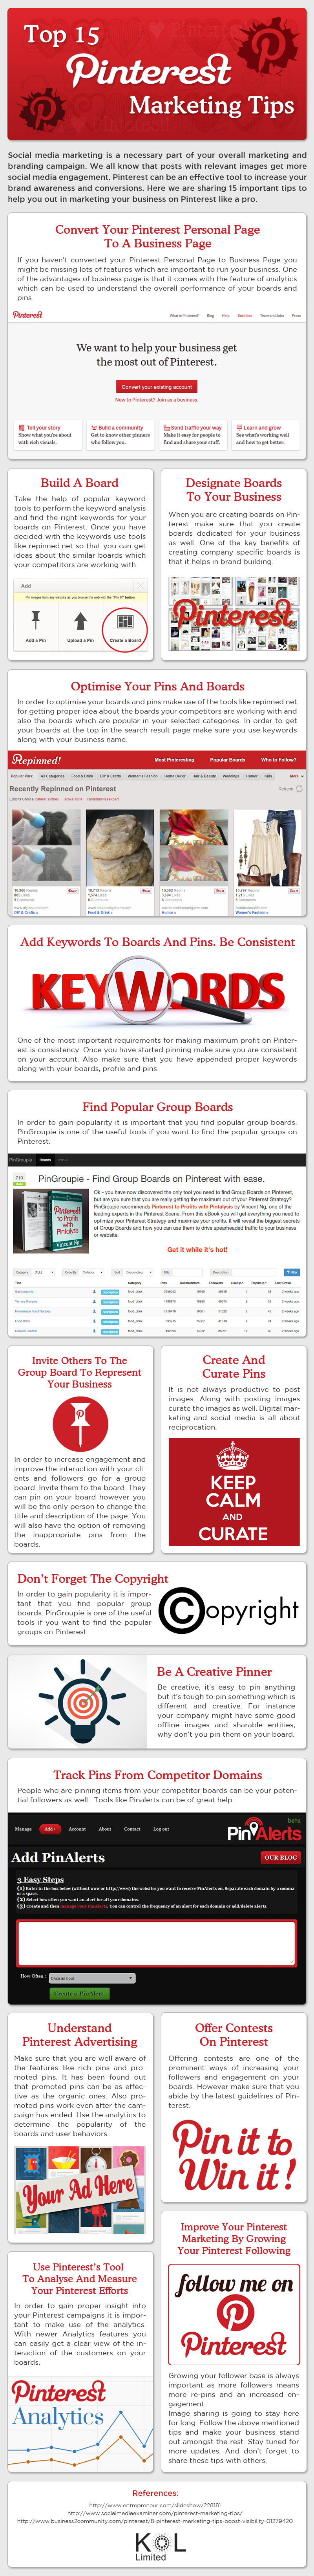 Top 15 Pinterest Marketing Tips